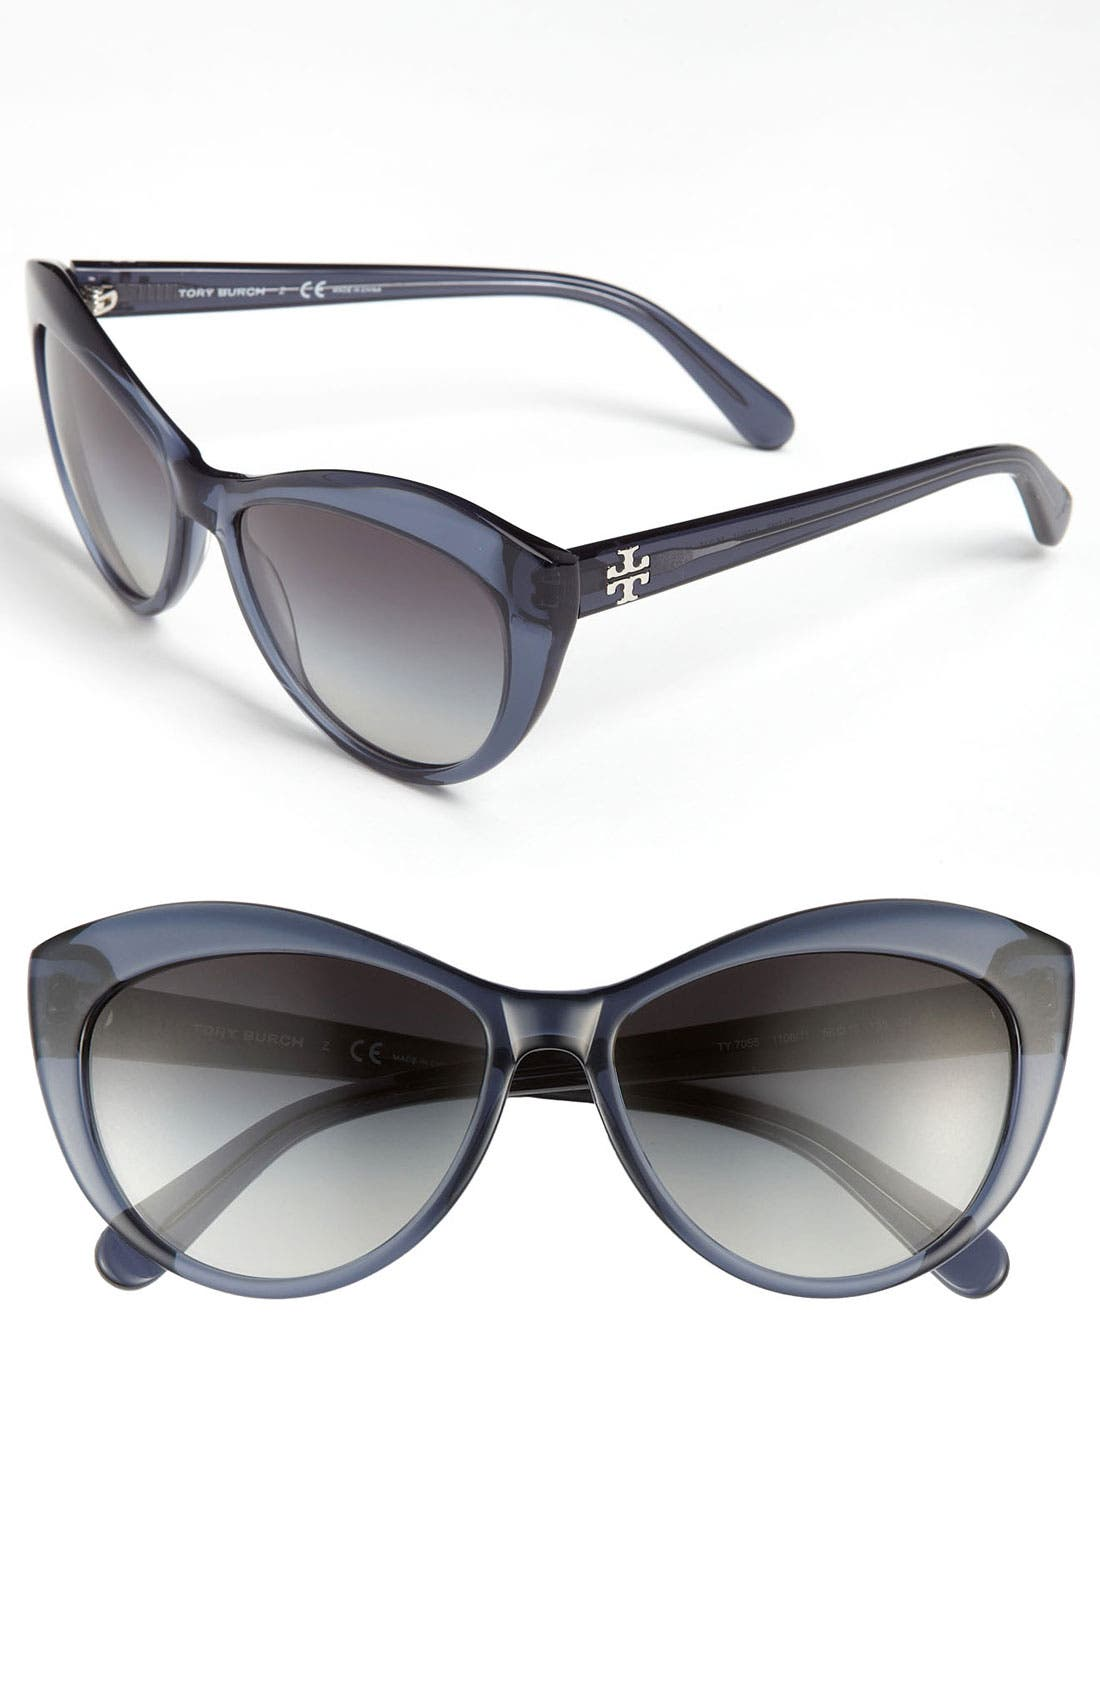 Main Image - Tory Burch 56mm Cat Eye Sunglasses